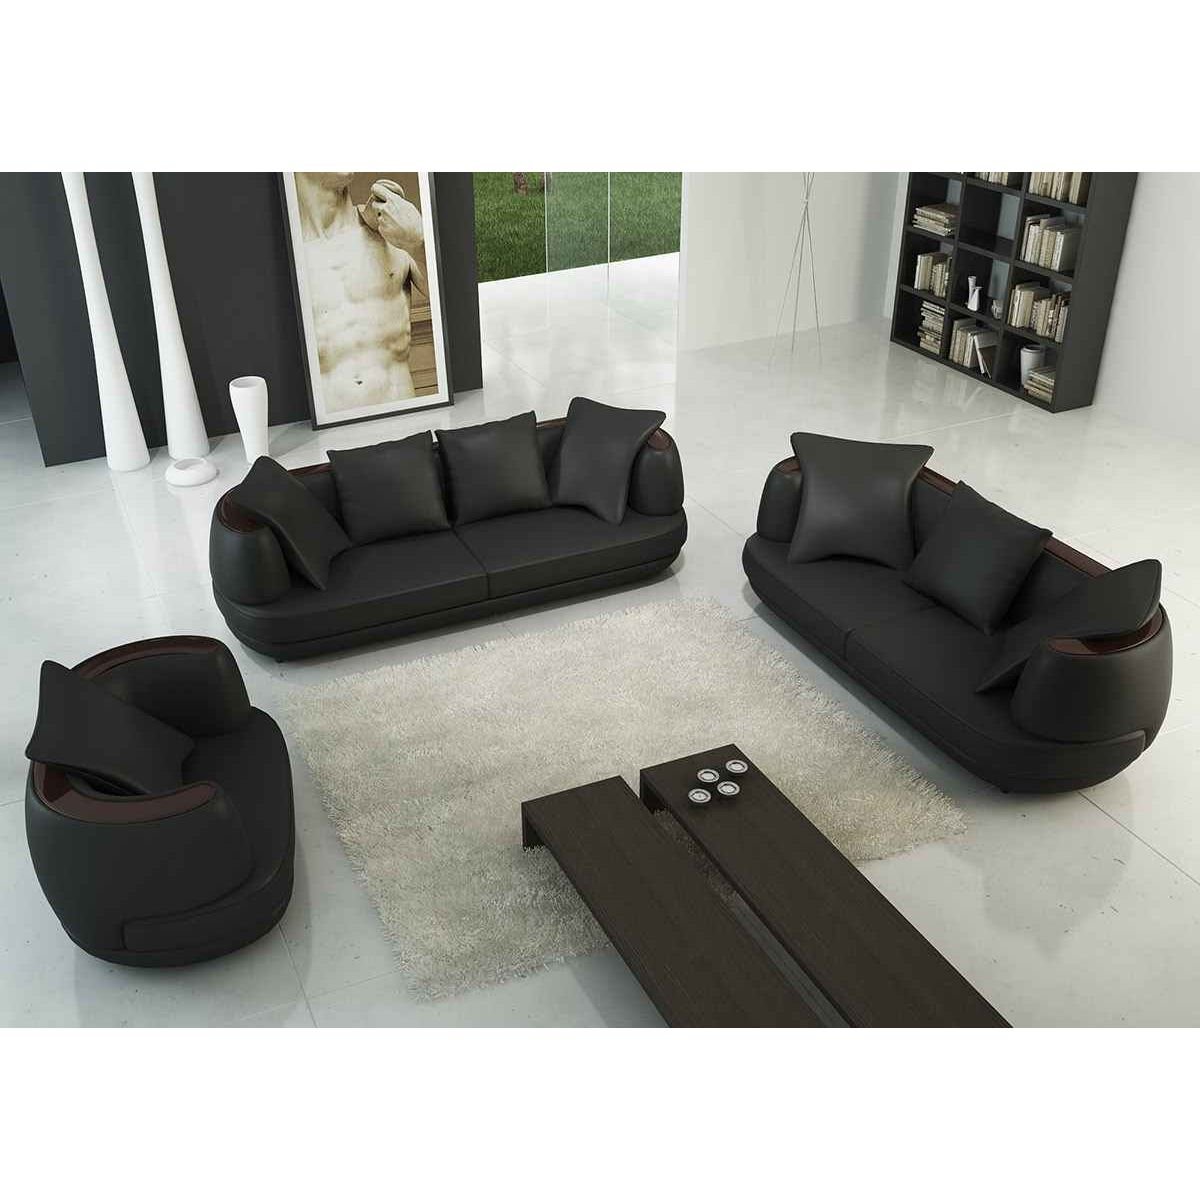 DECO IN PARIS Ensemble canape 3 2 1 places noir en cuir